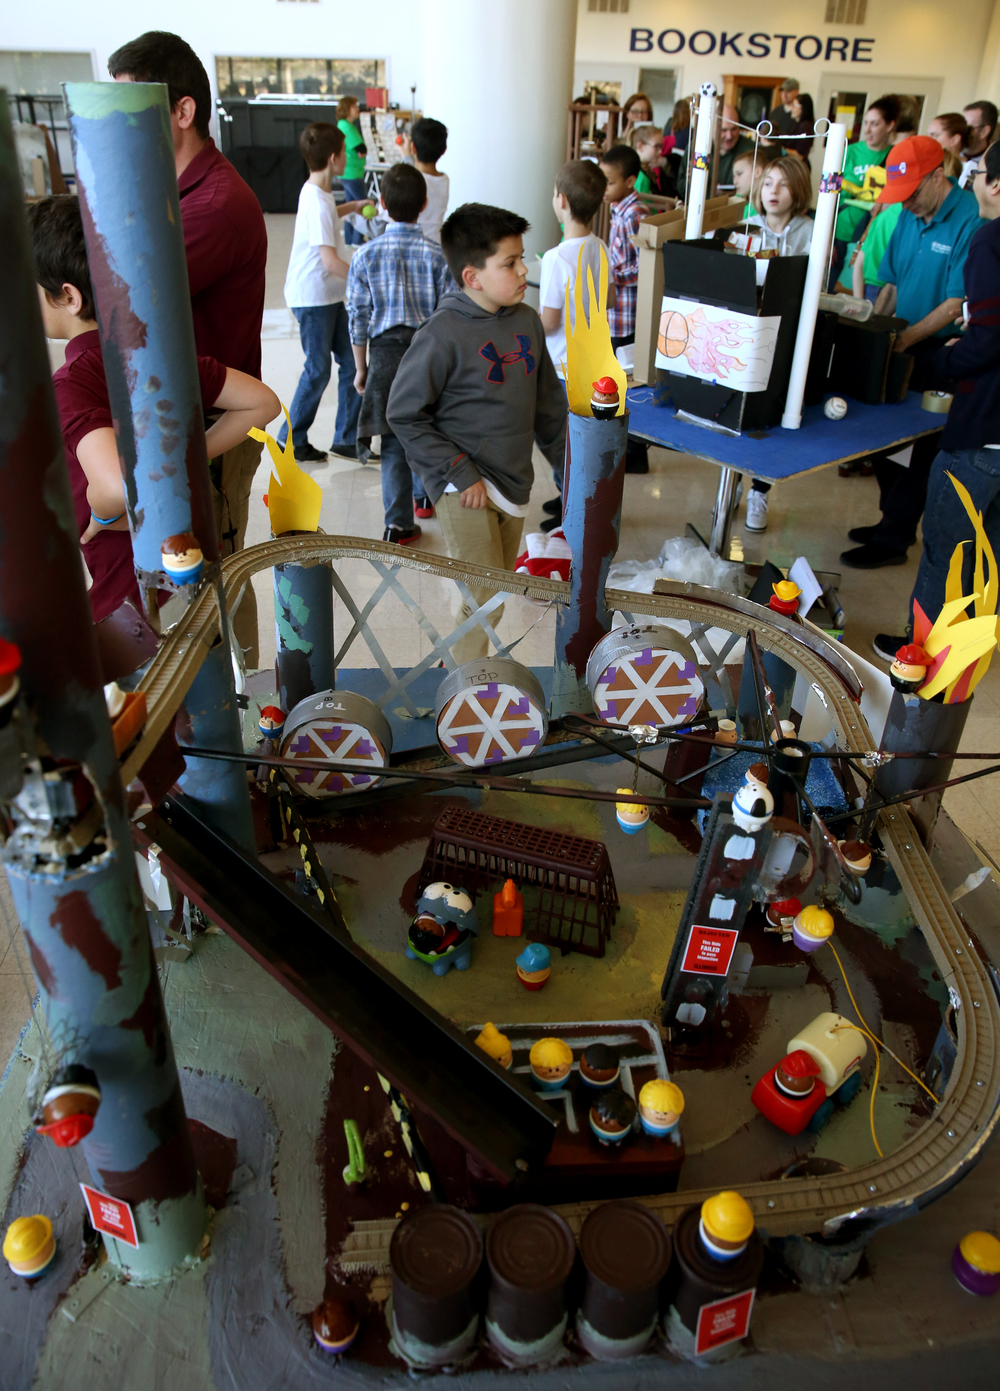 Dragon's Demise, an amusent park-themed Rube Goldberg machine built by a team of fifth grade students from Dubois Elementary, was on display in the Student Union at LLCC where the competition was taking place on Saturday. David Spencer/The State Journal Register